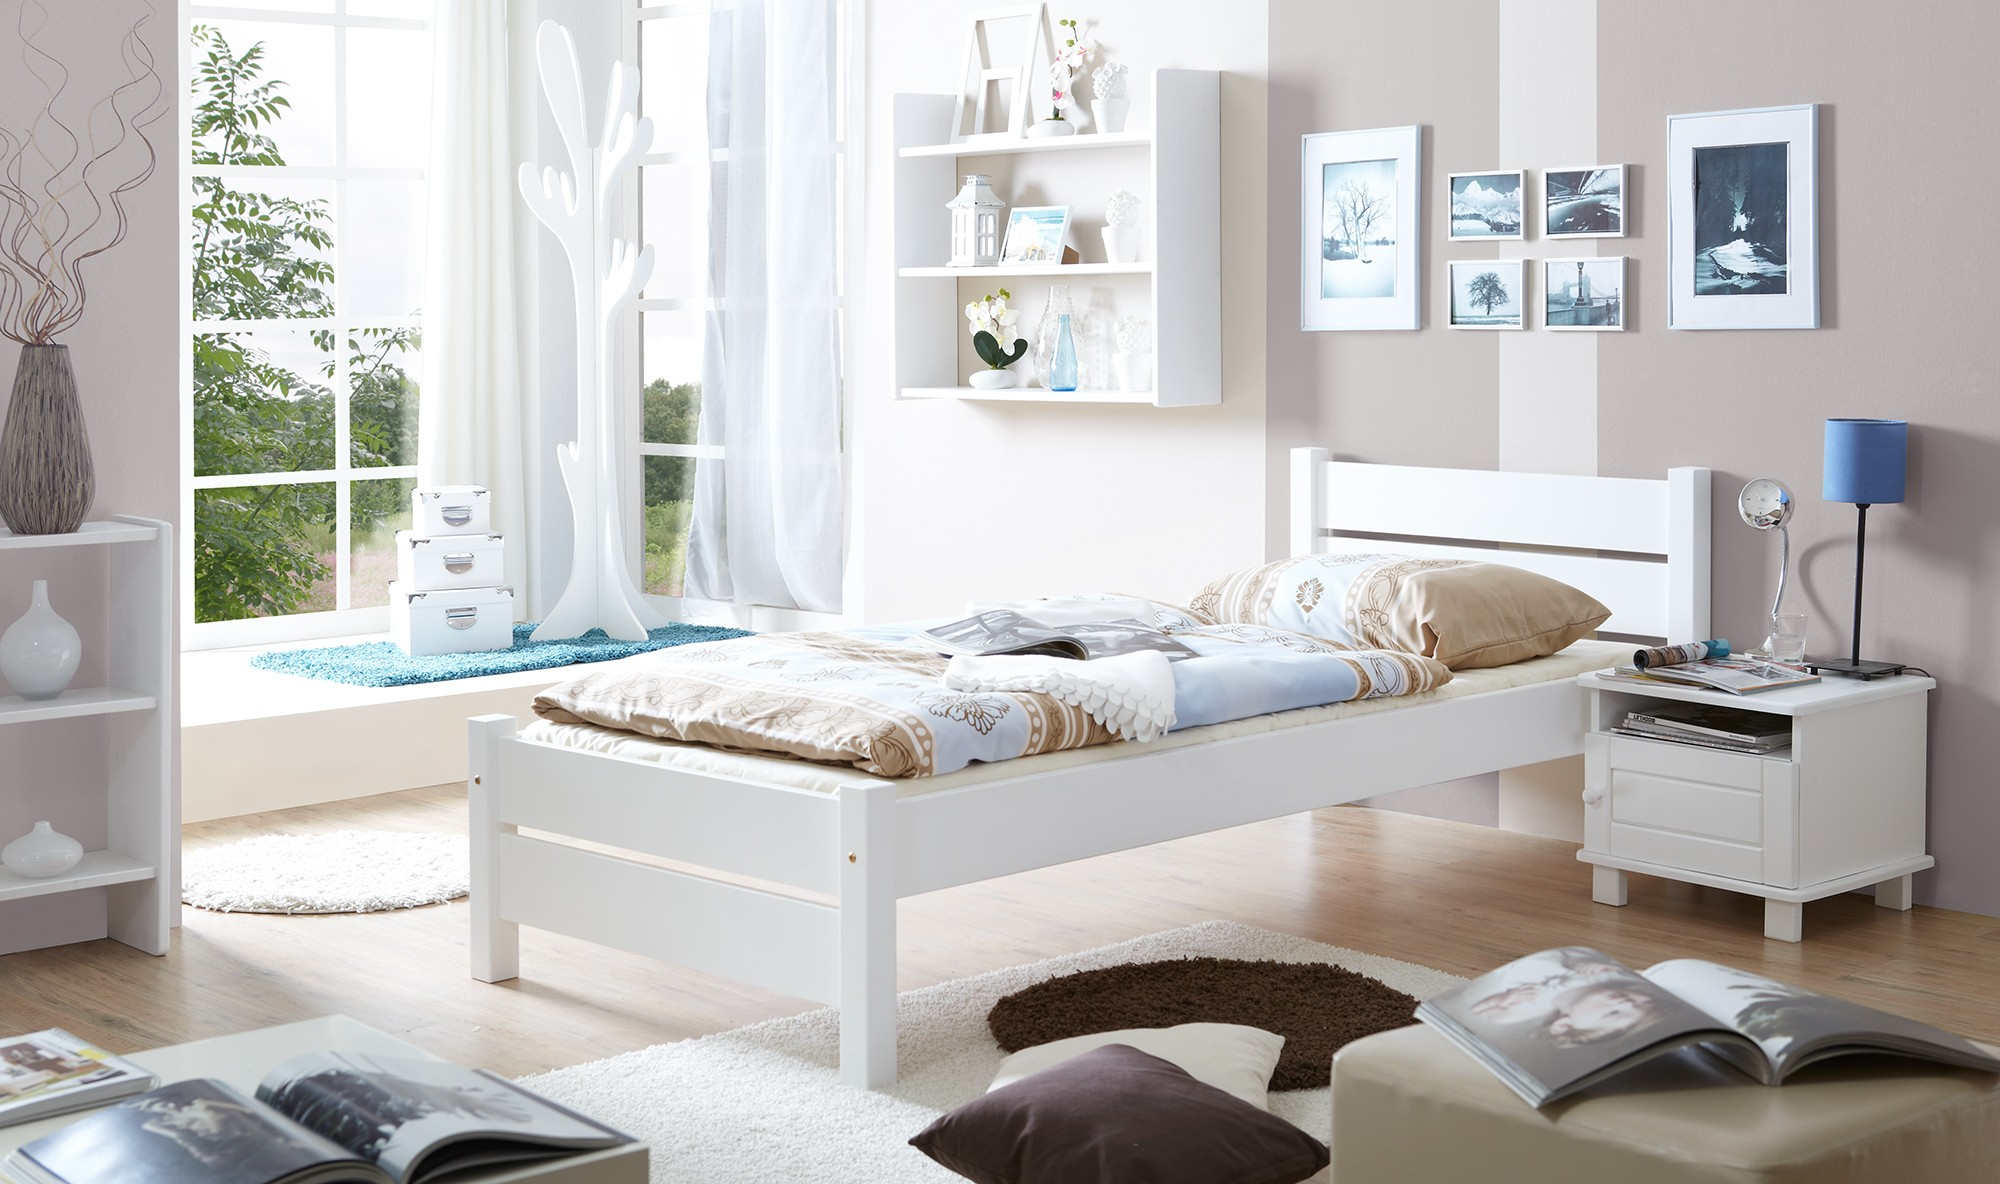 einzelbett 90x200 kiefer weiss h c m bel. Black Bedroom Furniture Sets. Home Design Ideas